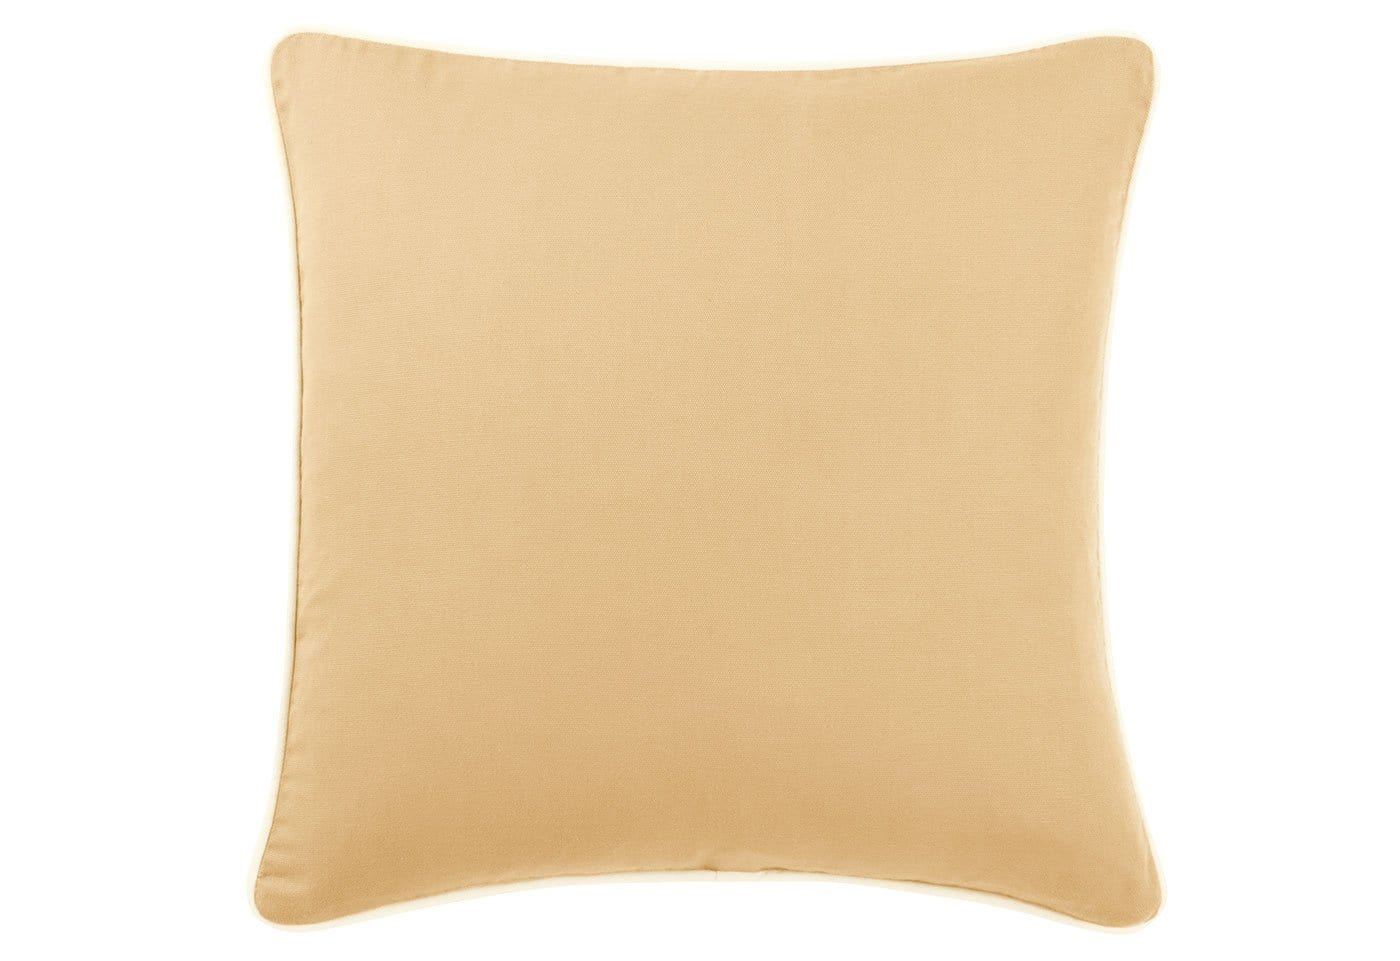 Cotton Canvas 18 Inch Square Pillow Cover - 18x18 / Maize